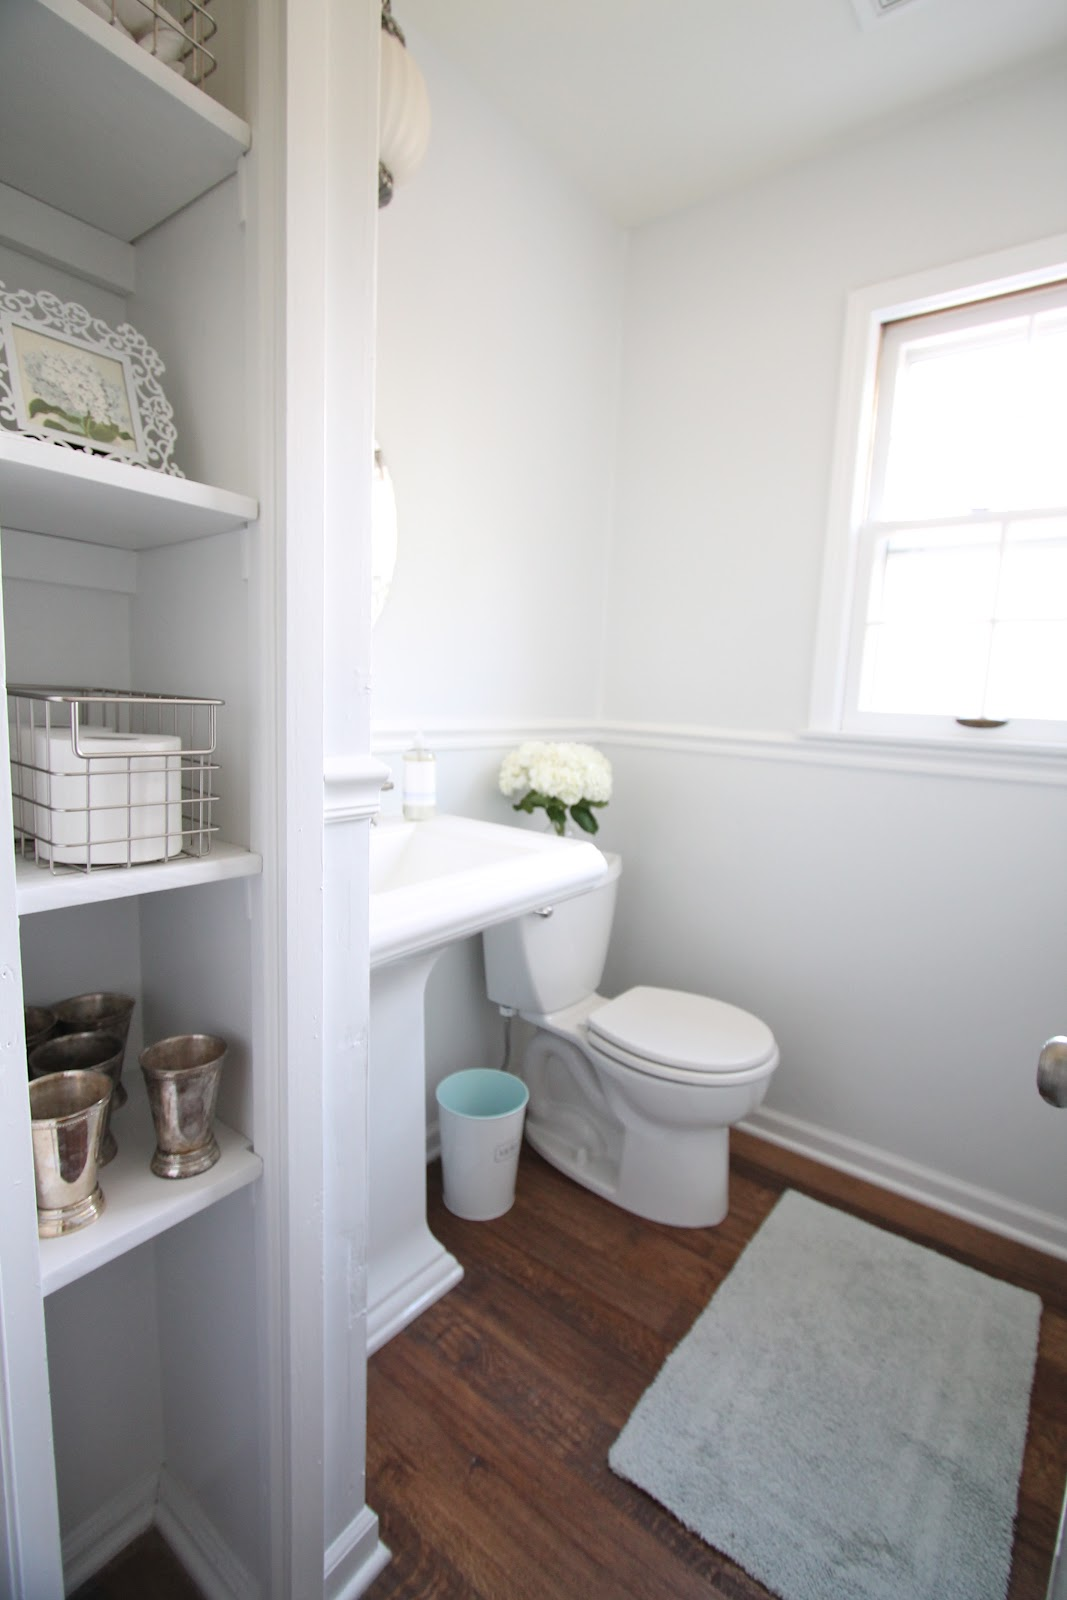 Stunning Design Of The Brown Wooden Floor Ideas Added With White Wall And Grey Rugs Idas With White Sink And Toilets